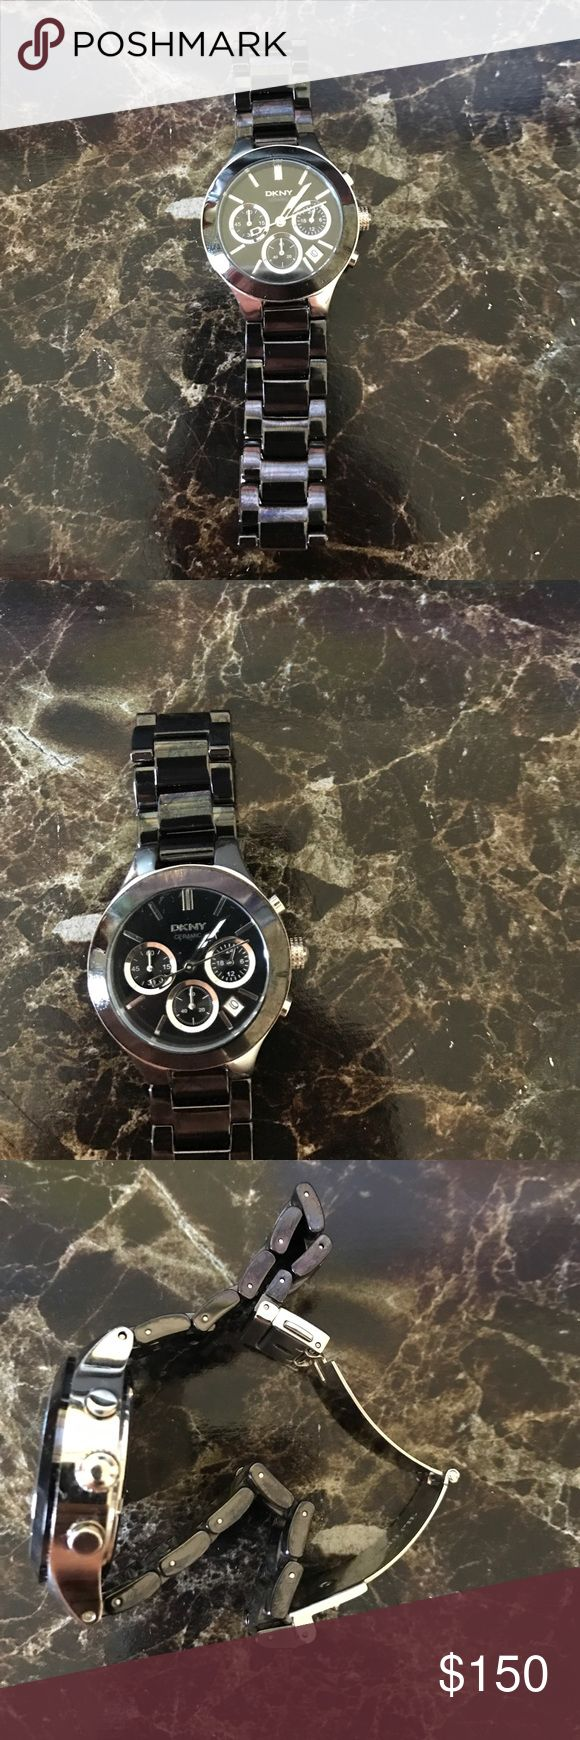 Dkny women's oversized watch black gunmetal color New without tags and box. Round 35 mm dial DKNY Accessories Watches